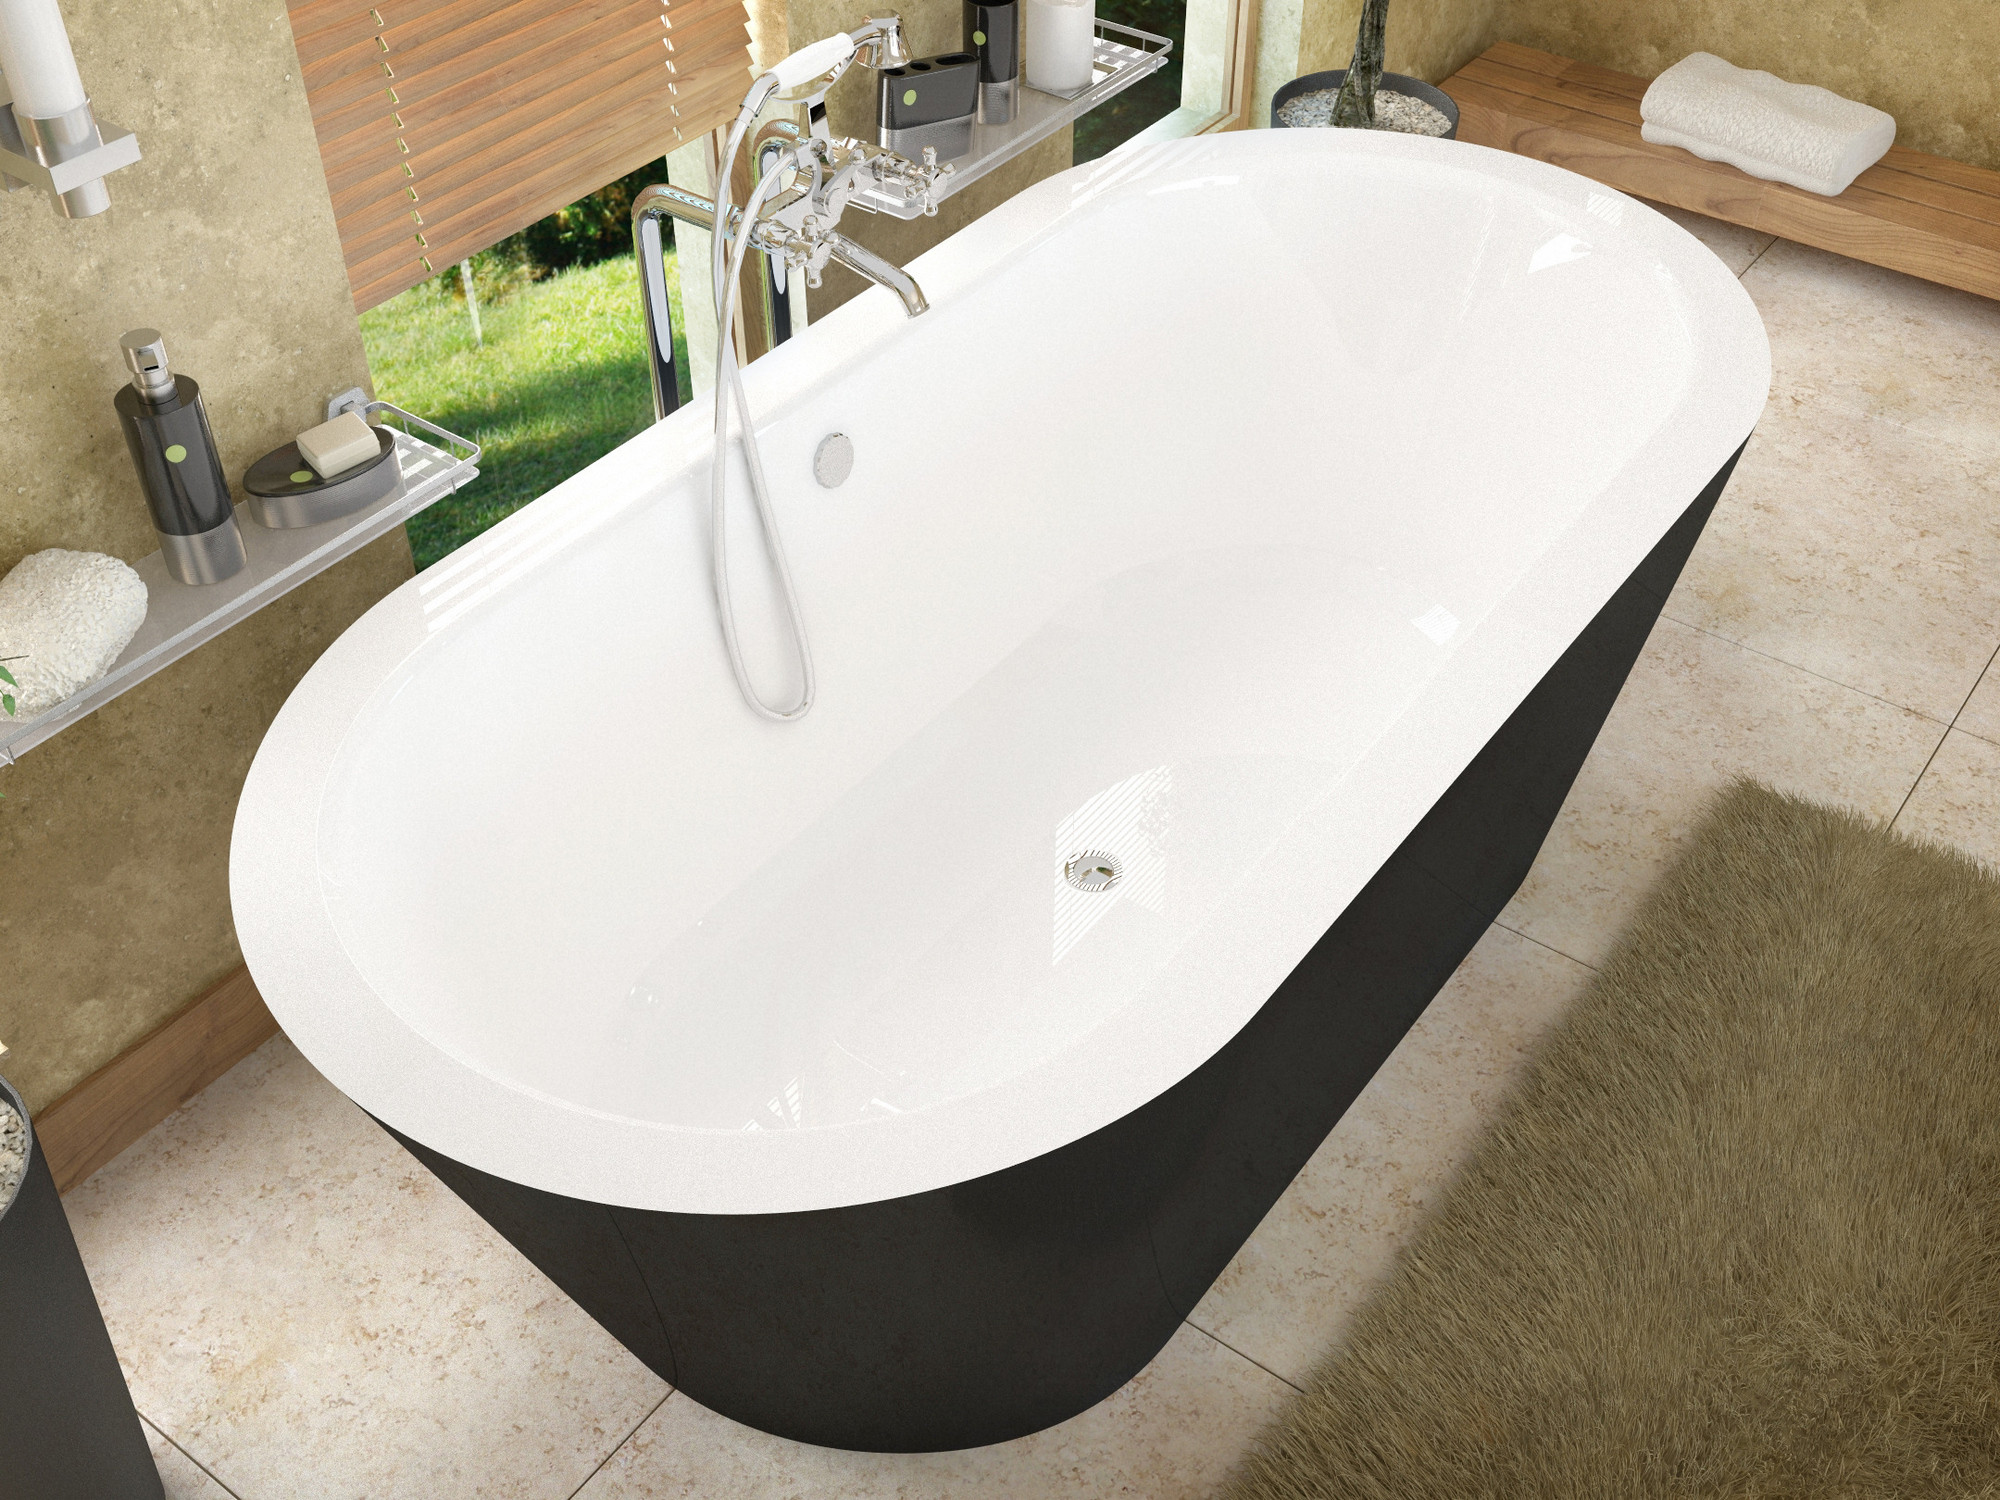 MediTub 3270VY Atlantis Valley One Piece Soaker Tub With Center Drain